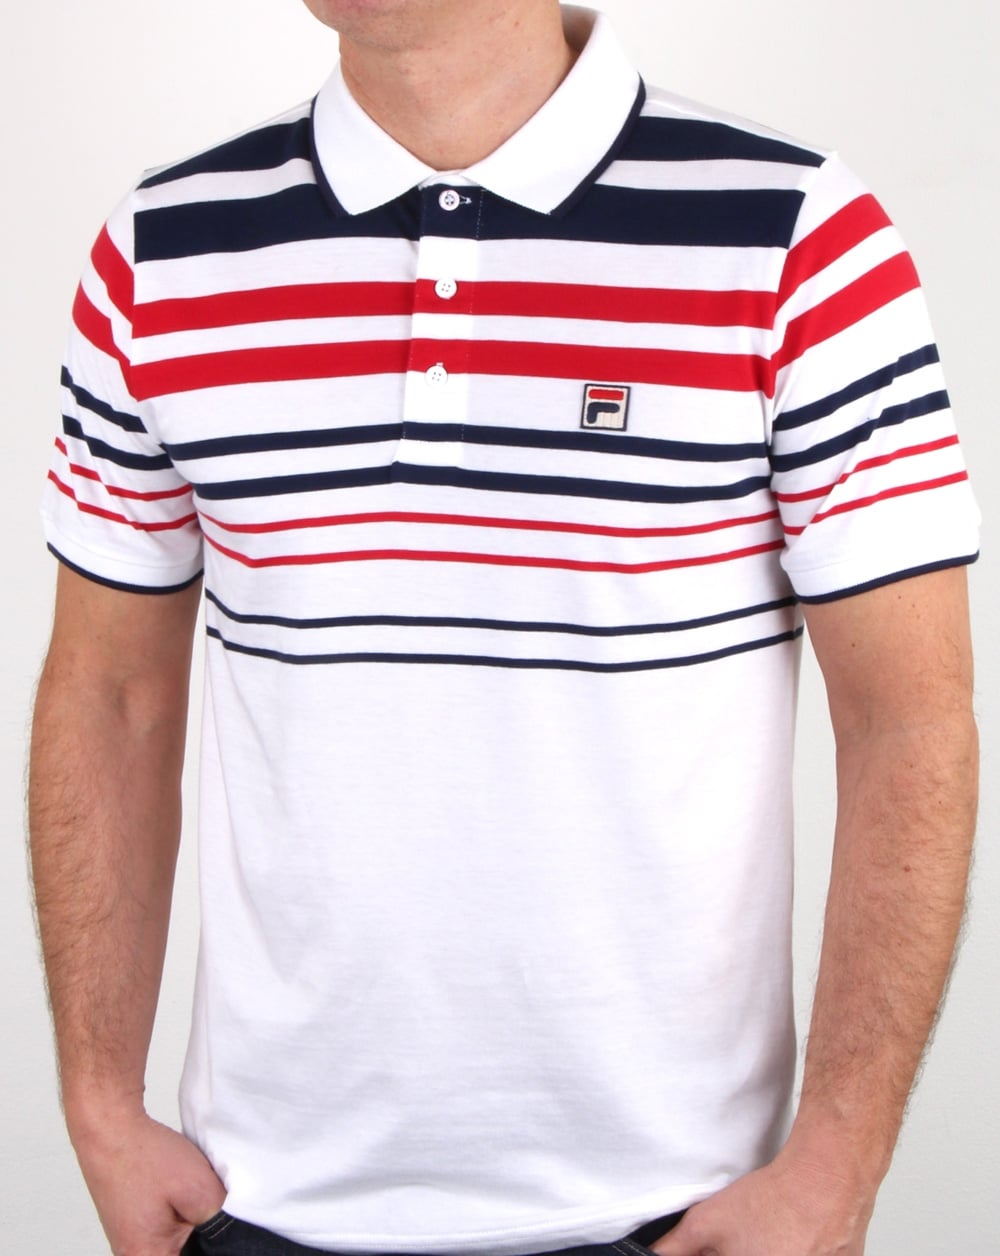 b773a57c Fila Vintage Geeza Point Polo Shirt White/Navy/Red | 80s casual classics